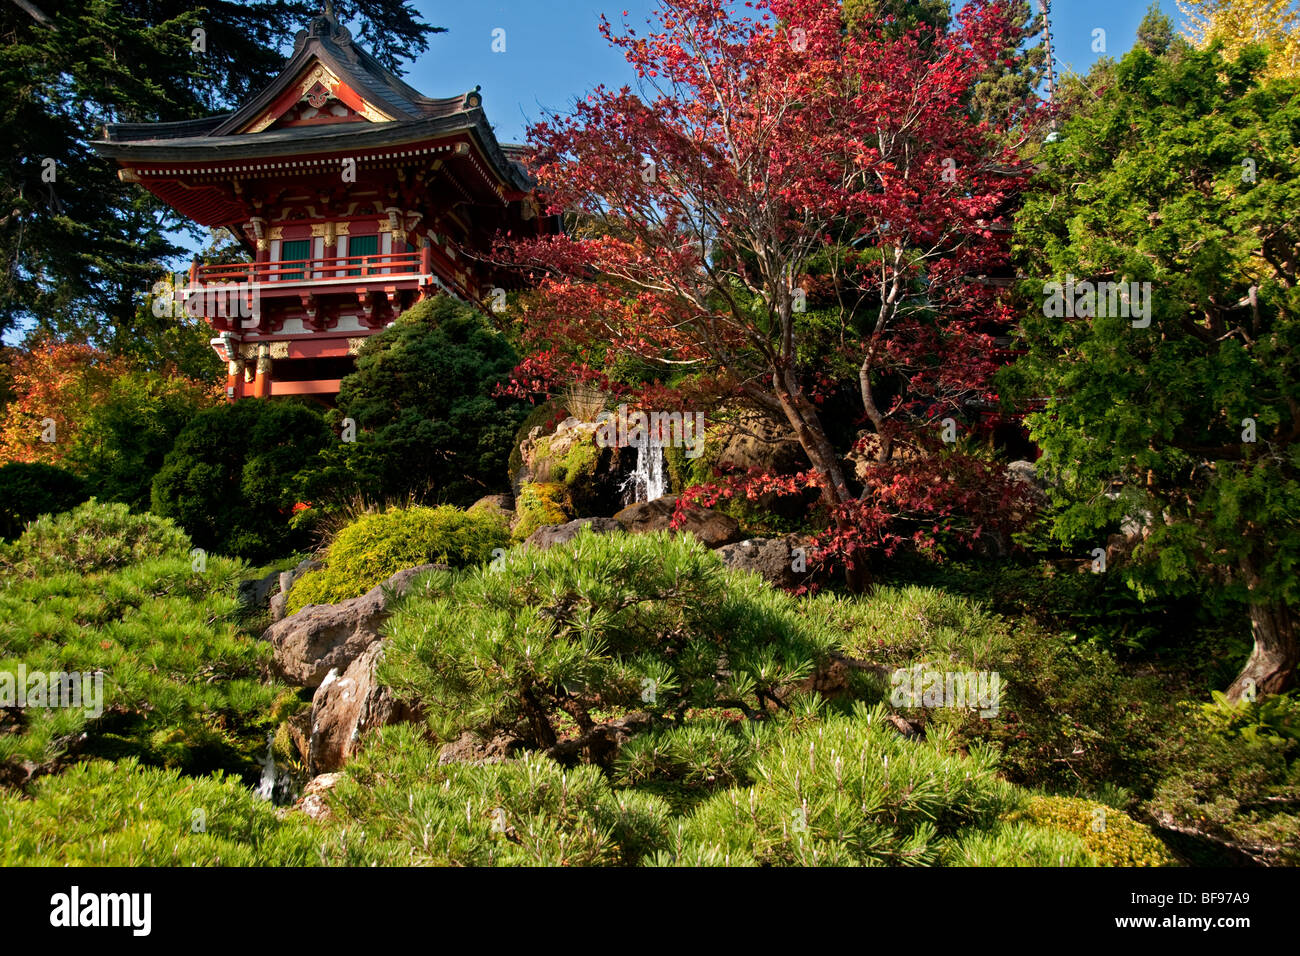 Japanese Tea Garden San Francisco Stock Photos & Japanese Tea Garden ...